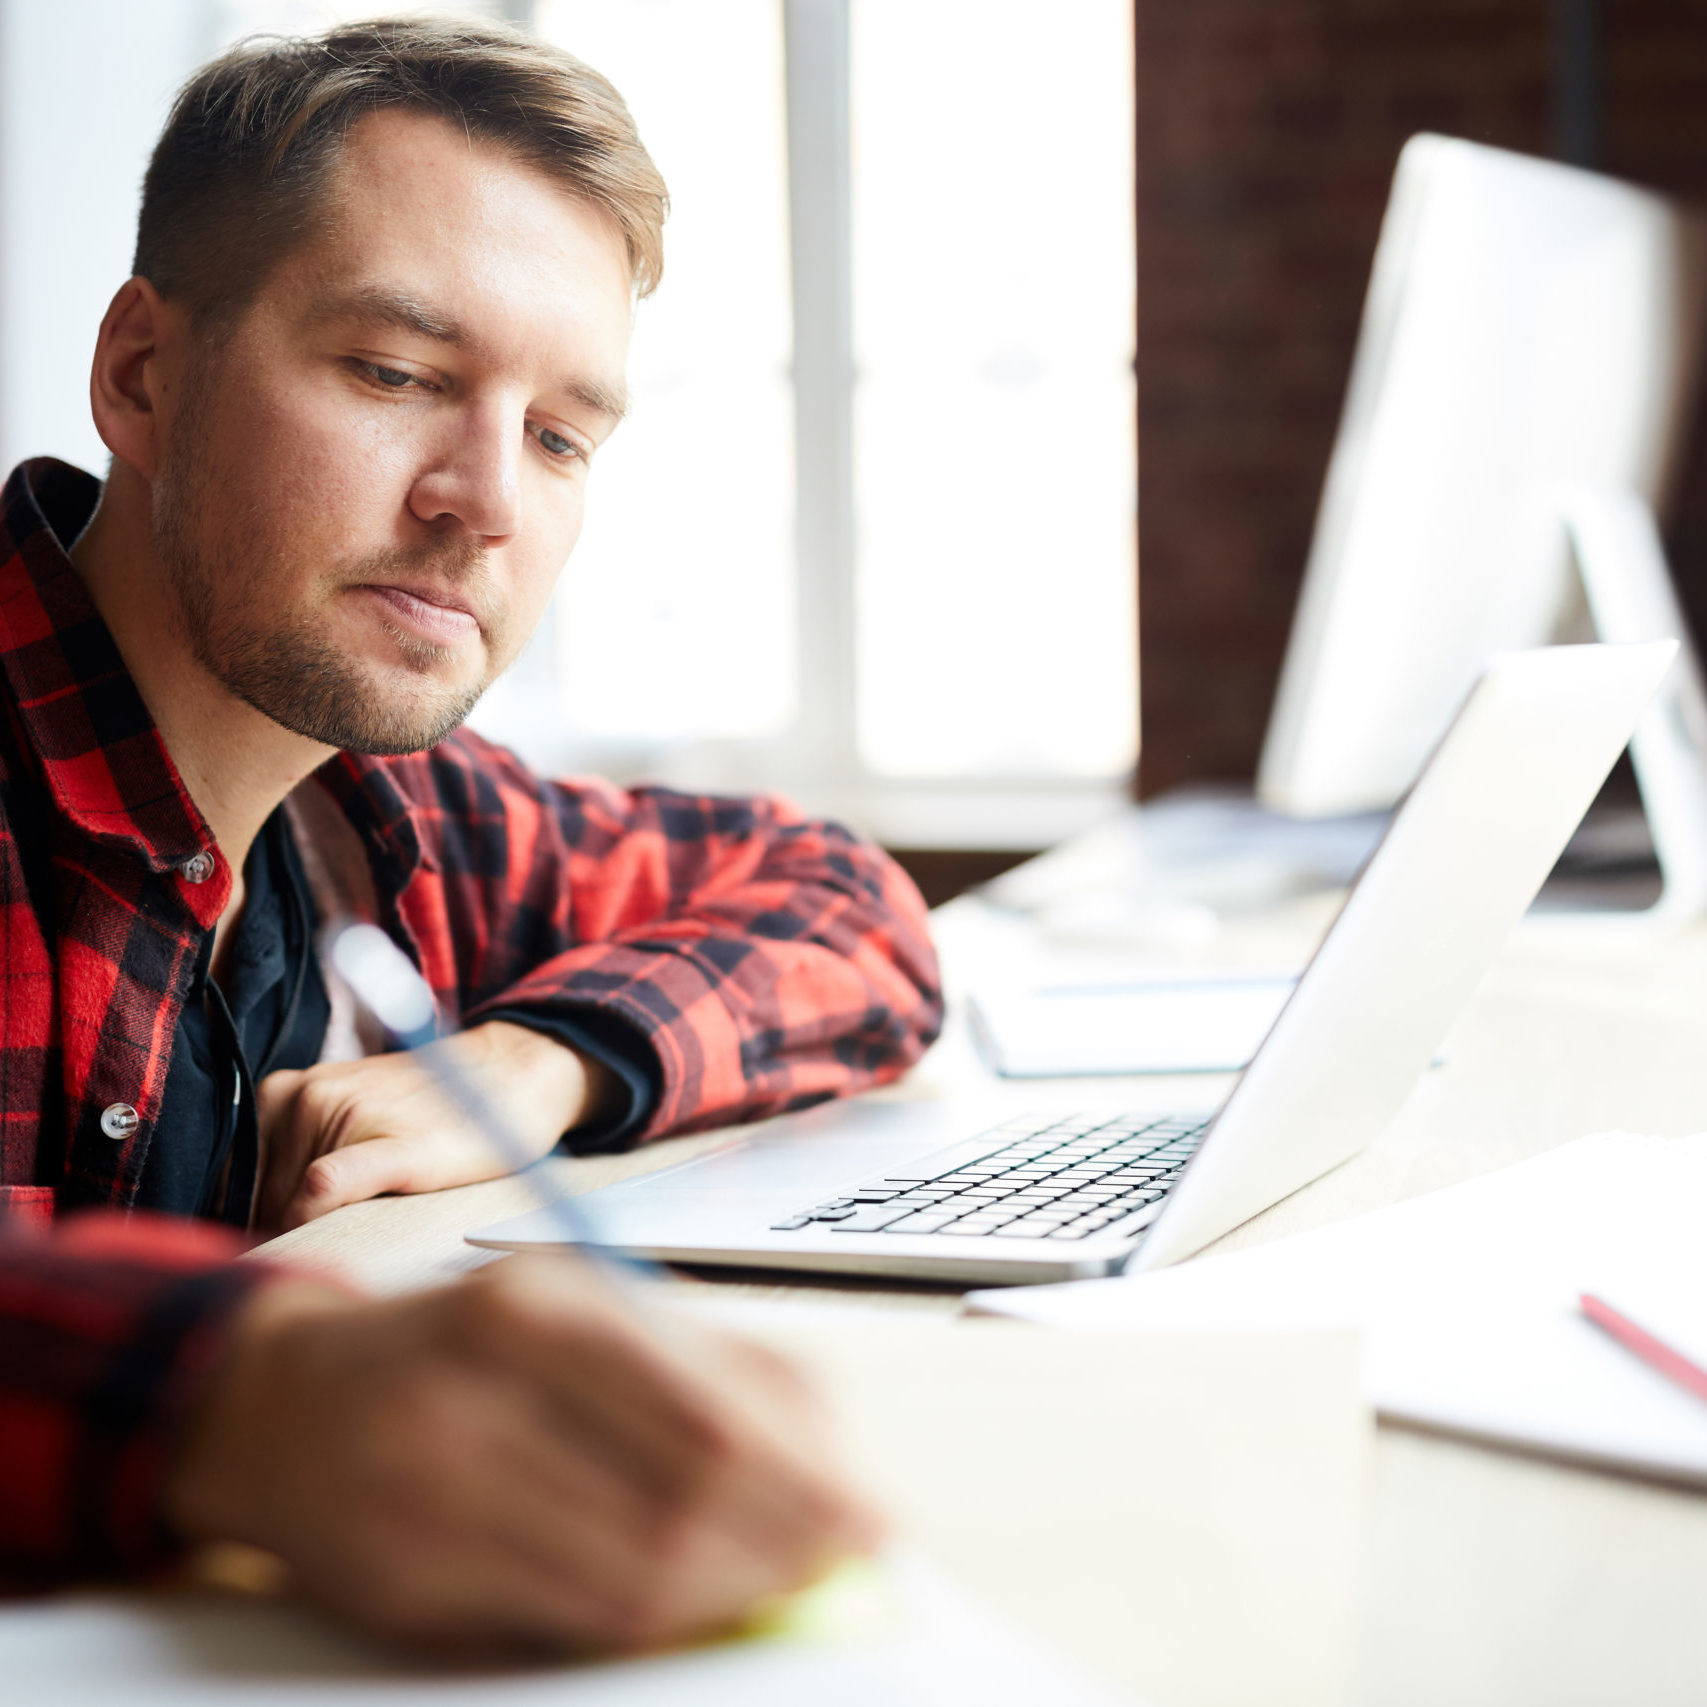 Young student or manager making notes while sitting in front of laptop by desk